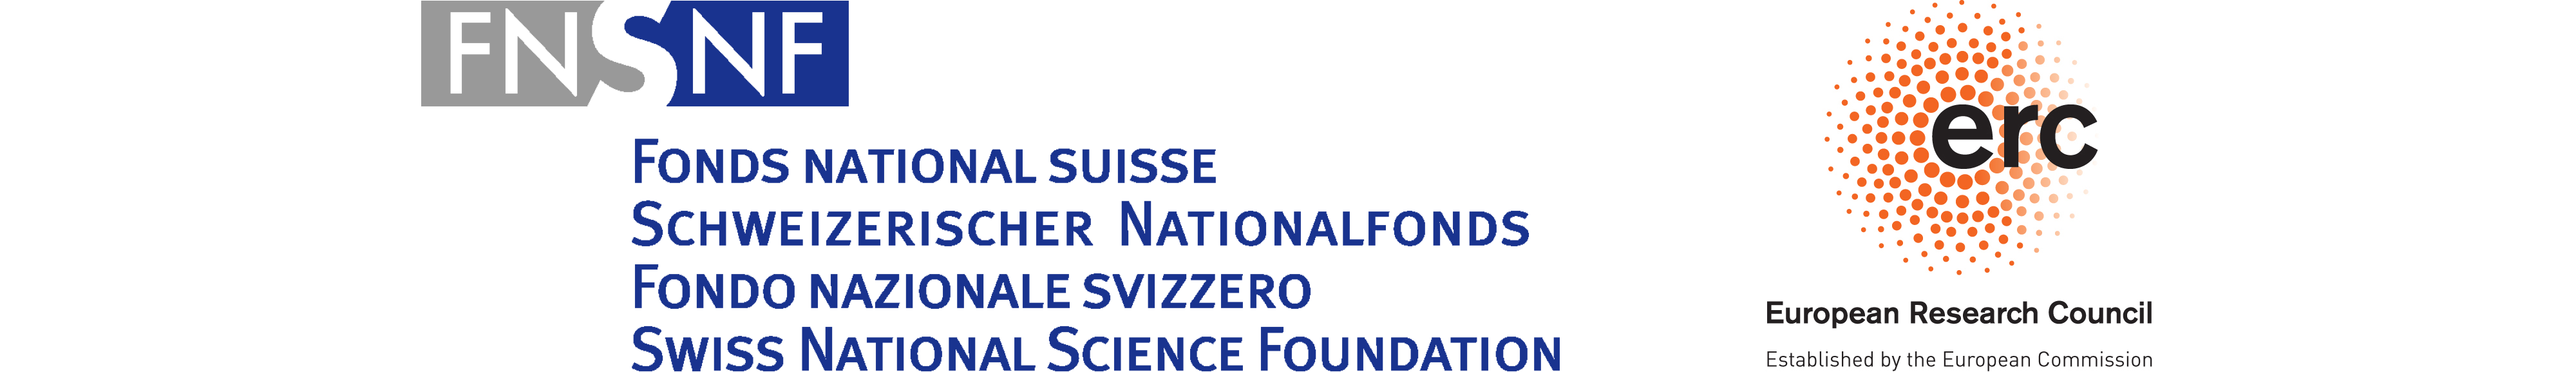 Swiss National Science Foundation Logo / European Research Council Logo